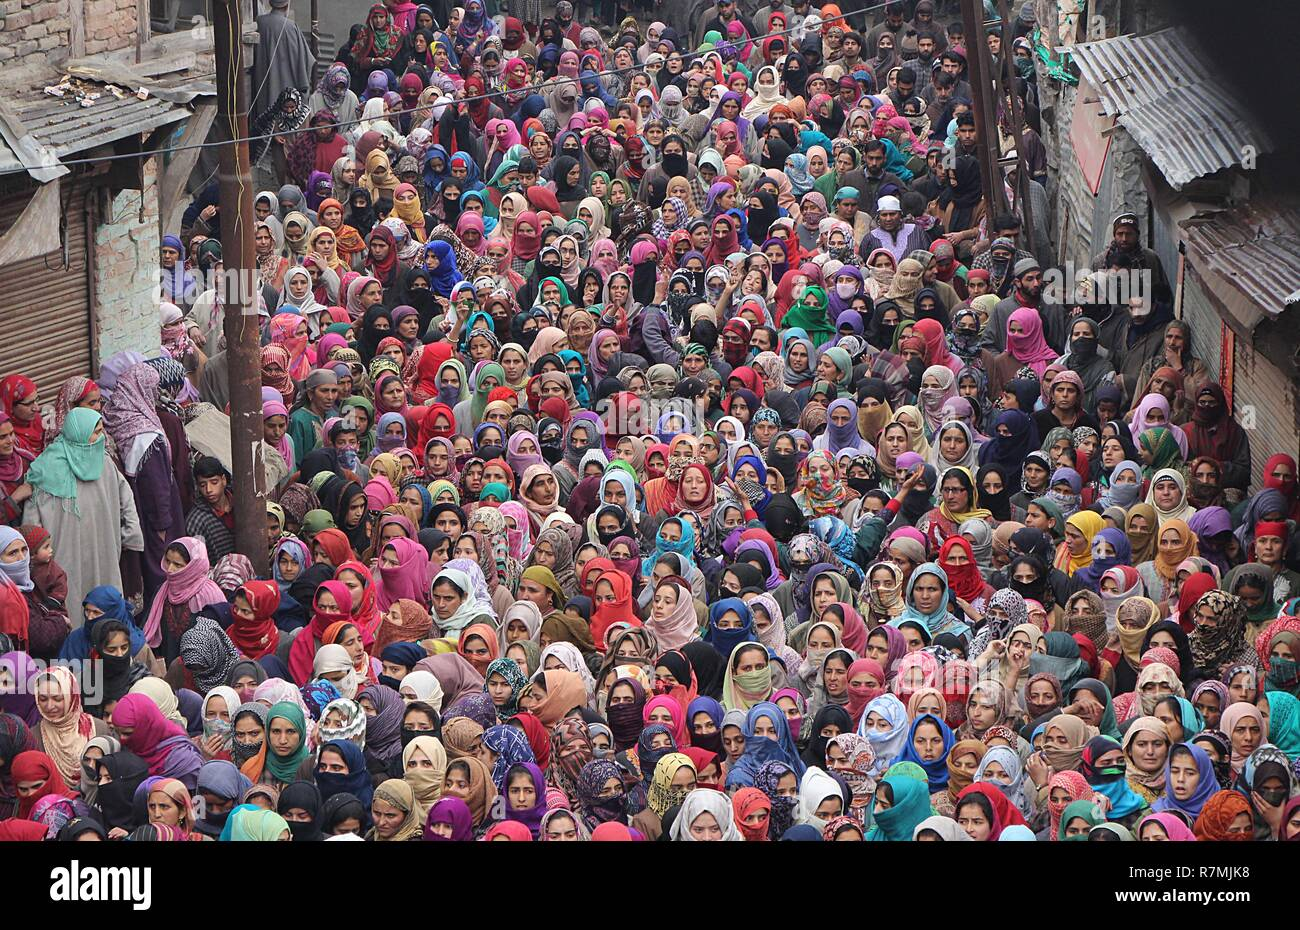 Hajin, Kashmir. 10th December, 2018. Women march to attend the funeral of teenage militants in Hajin area of north Kashmir some 35 kilometers from Srinagar the summer capital of Indian controlled Kashmir on December 10, 2018. Fourteen year old was among the three militants killed in 18-hour long gun-battle in Mujigund area on the Srinagar outskirts on December 09, 2018. Credit: Faisal Khan/Pacific Press/Alamy Live News Stock Photo